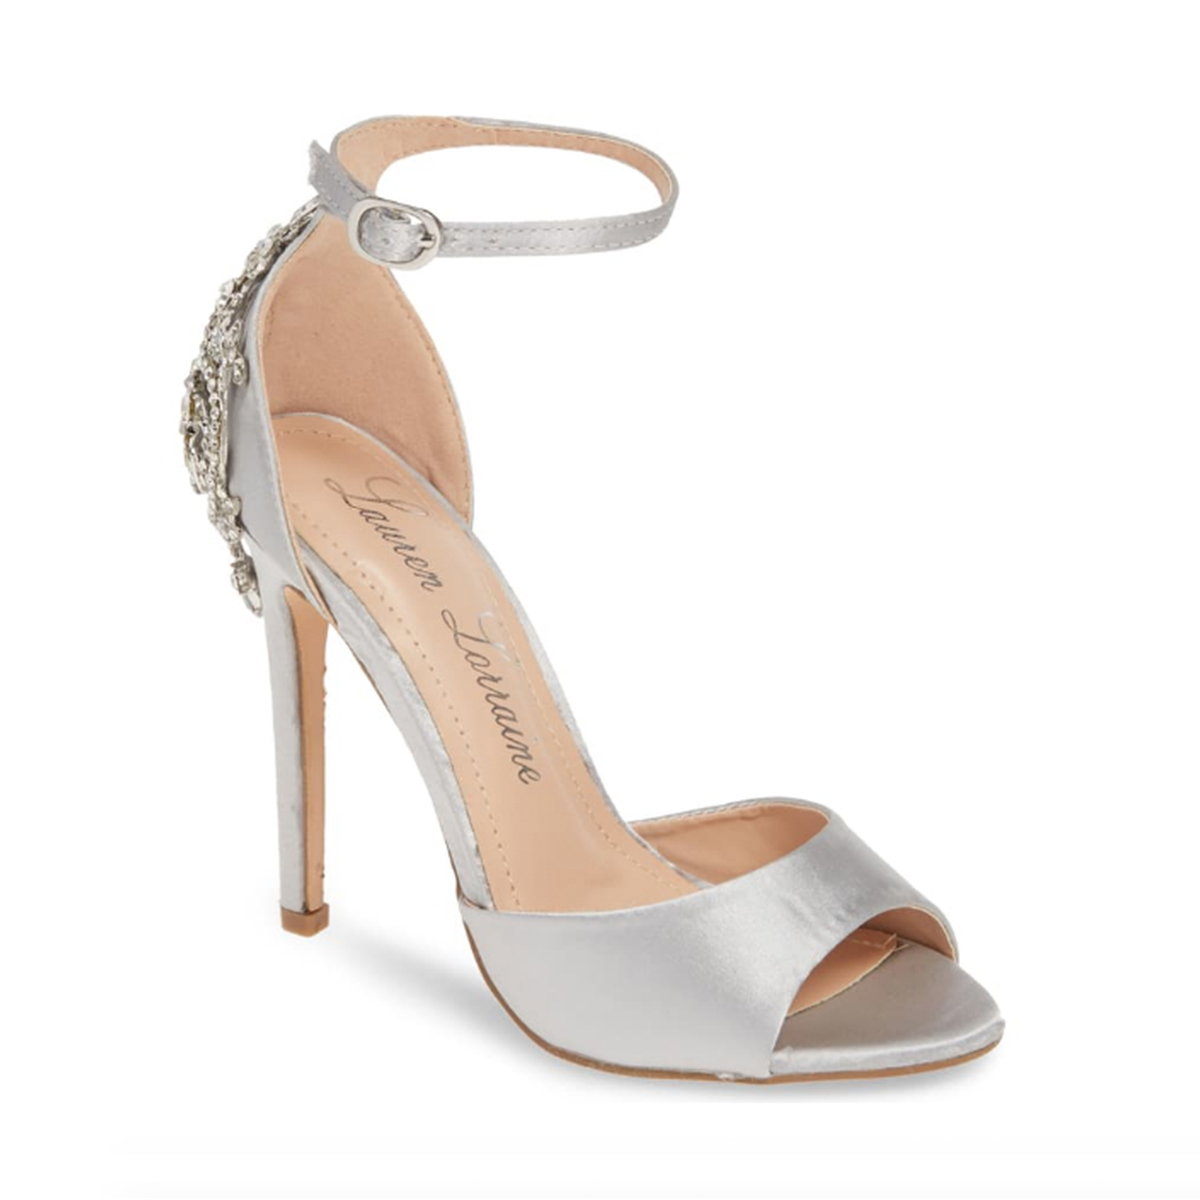 20 Gorgeous & Unique Wedding Shoes for The Fashionable Bride - on the Bronte Bride Blog